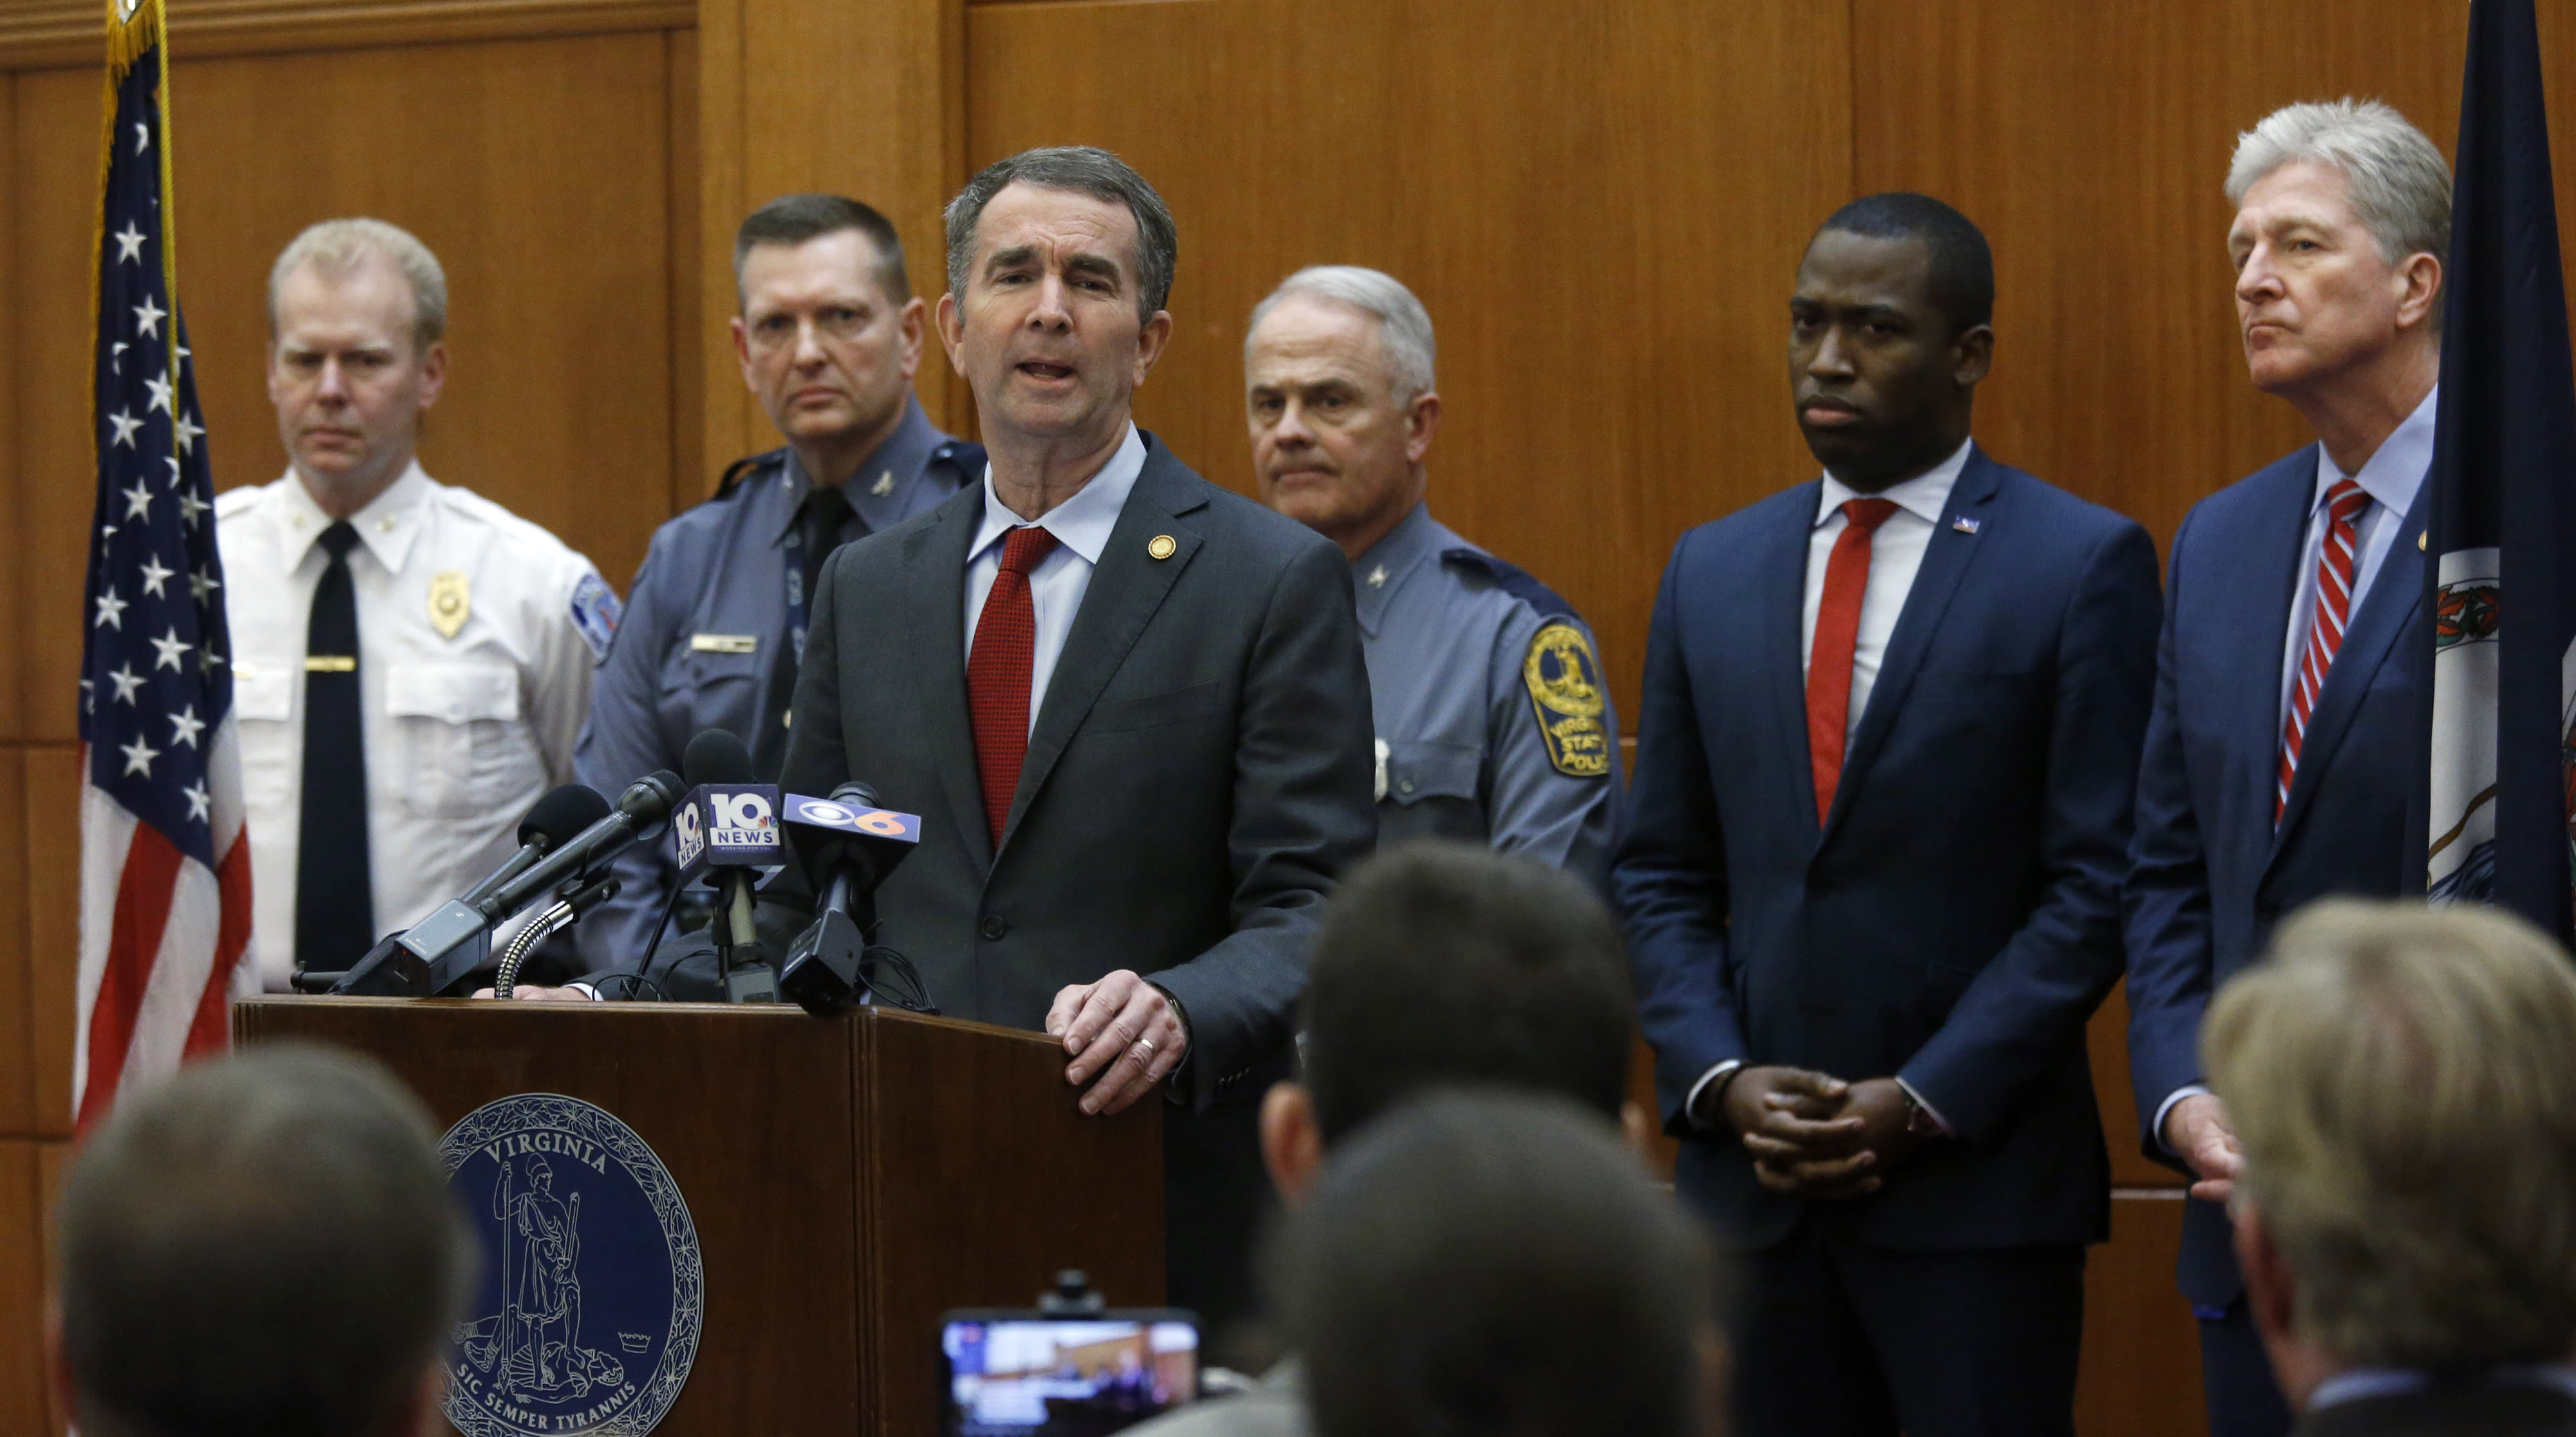 FILE - In this Wednesday, Jan. 15, 2020 file photo, Gov. Ralph Northam talks about security plans for Lobby Day at the Capitol when large crowds are expected to arrive at Capitol Square, during a news conference at the Patrick Henry Building in Richmond, Va. On Friday, Jan. 17, 2020, The Associated Press reported on stories circulating online incorrectly asserting that Northam said if people don't give up guns, the National Guard will cut off their power, and have them killed. Northam has responded to the false claim, saying he has no plans to confiscate guns. (Bob Brown/Richmond Times-Dispatch via AP)